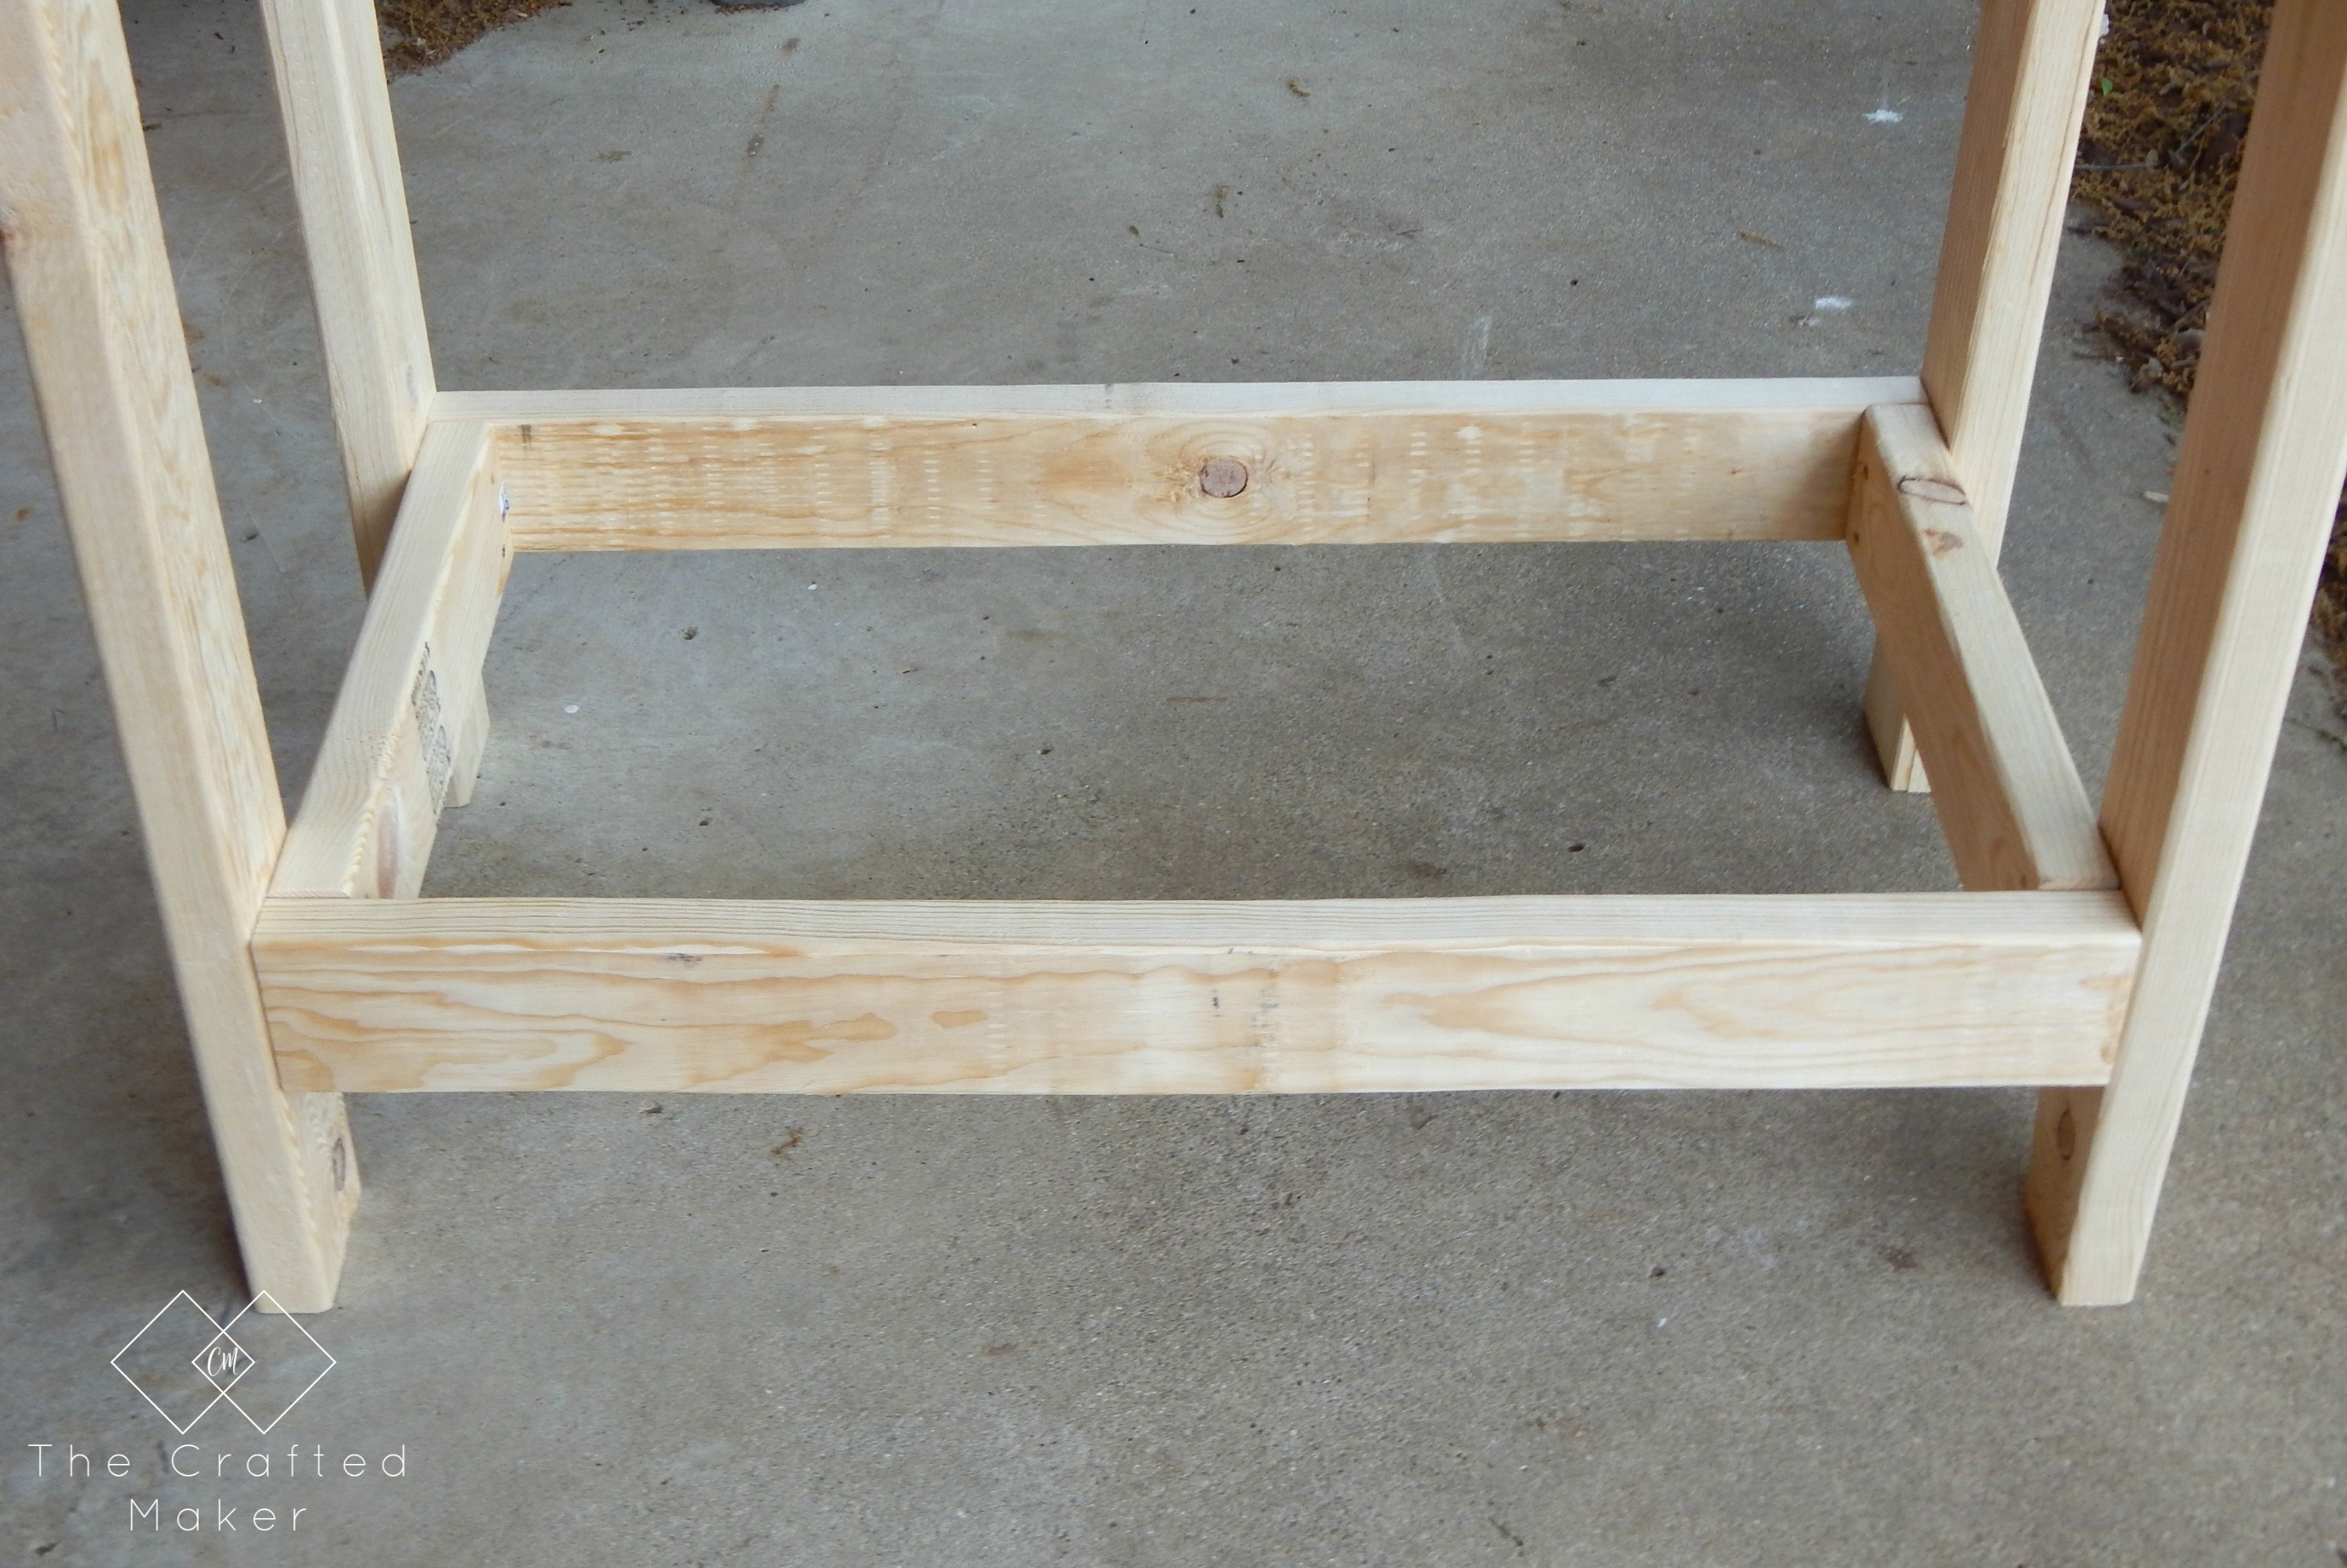 Wondrous Diy Party Cart Potting Bench The Crafted Maker Evergreenethics Interior Chair Design Evergreenethicsorg